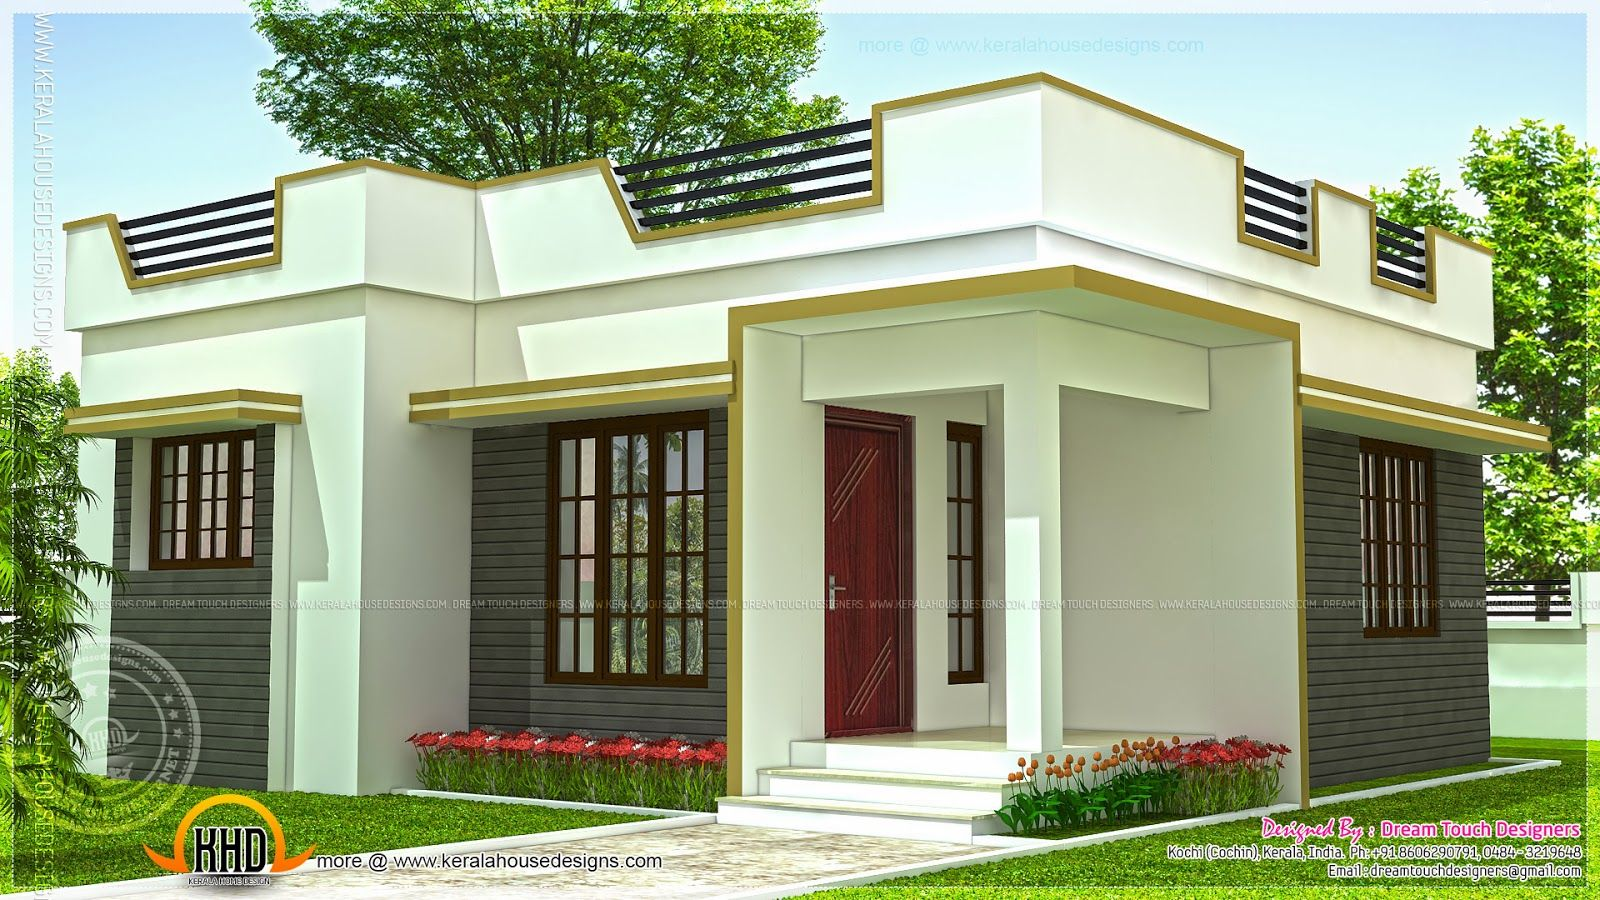 Gallery of kerala home design floor plans elevations interiors designs and other house related products also pin by tj oliva on small rh pinterest